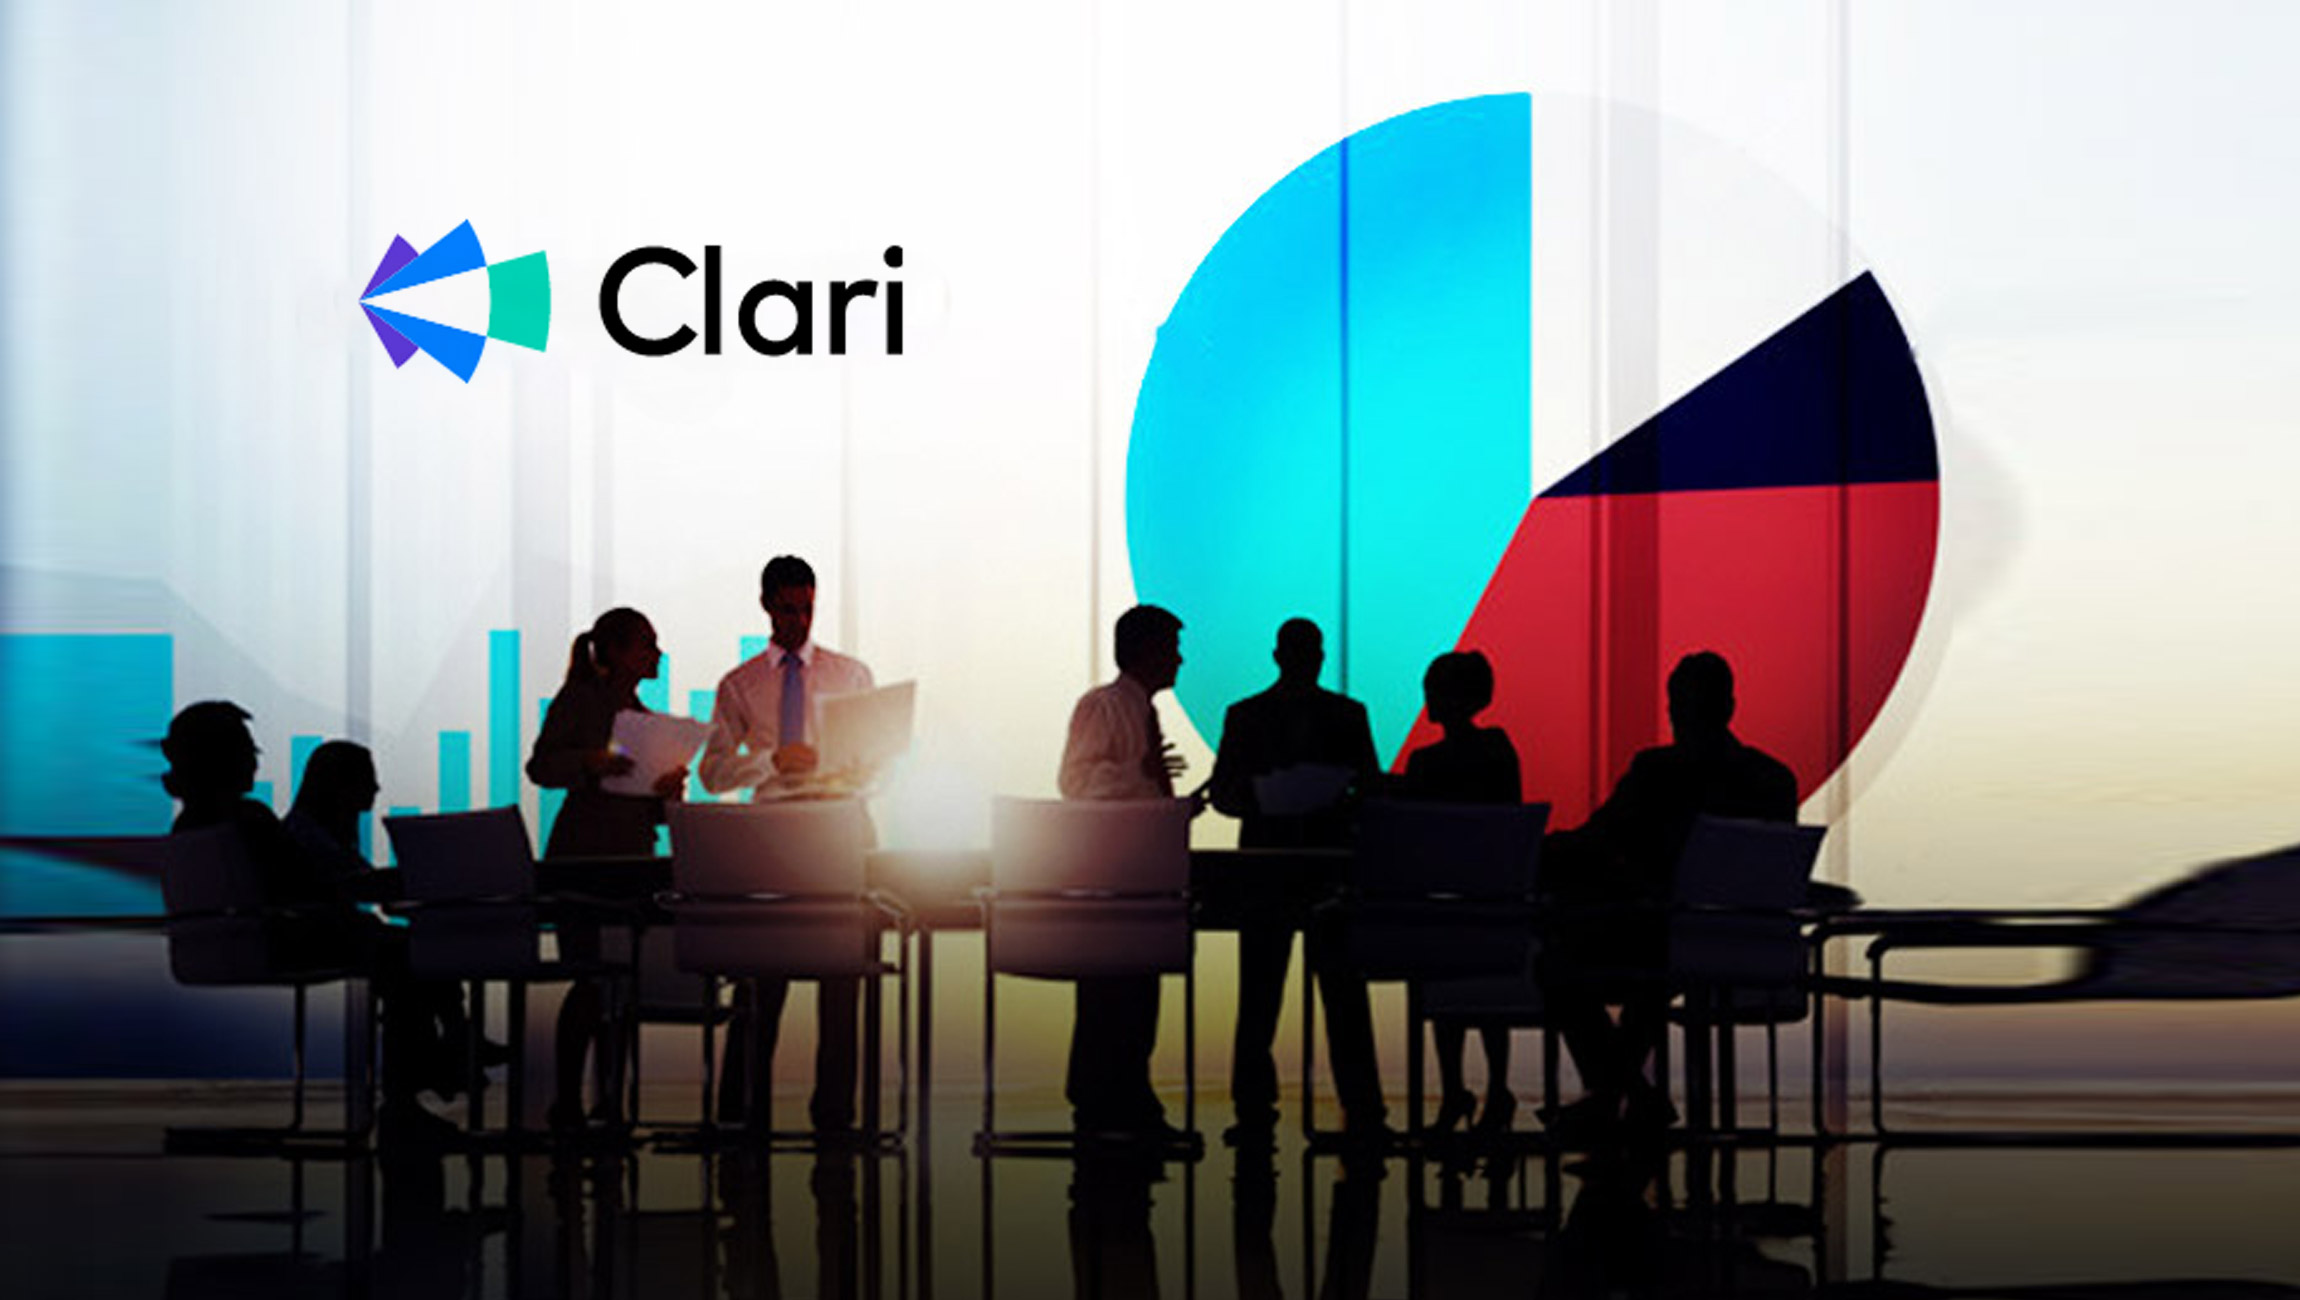 G2 Creates New Revenue Operations Category and Positions Clari as the #1 Leader